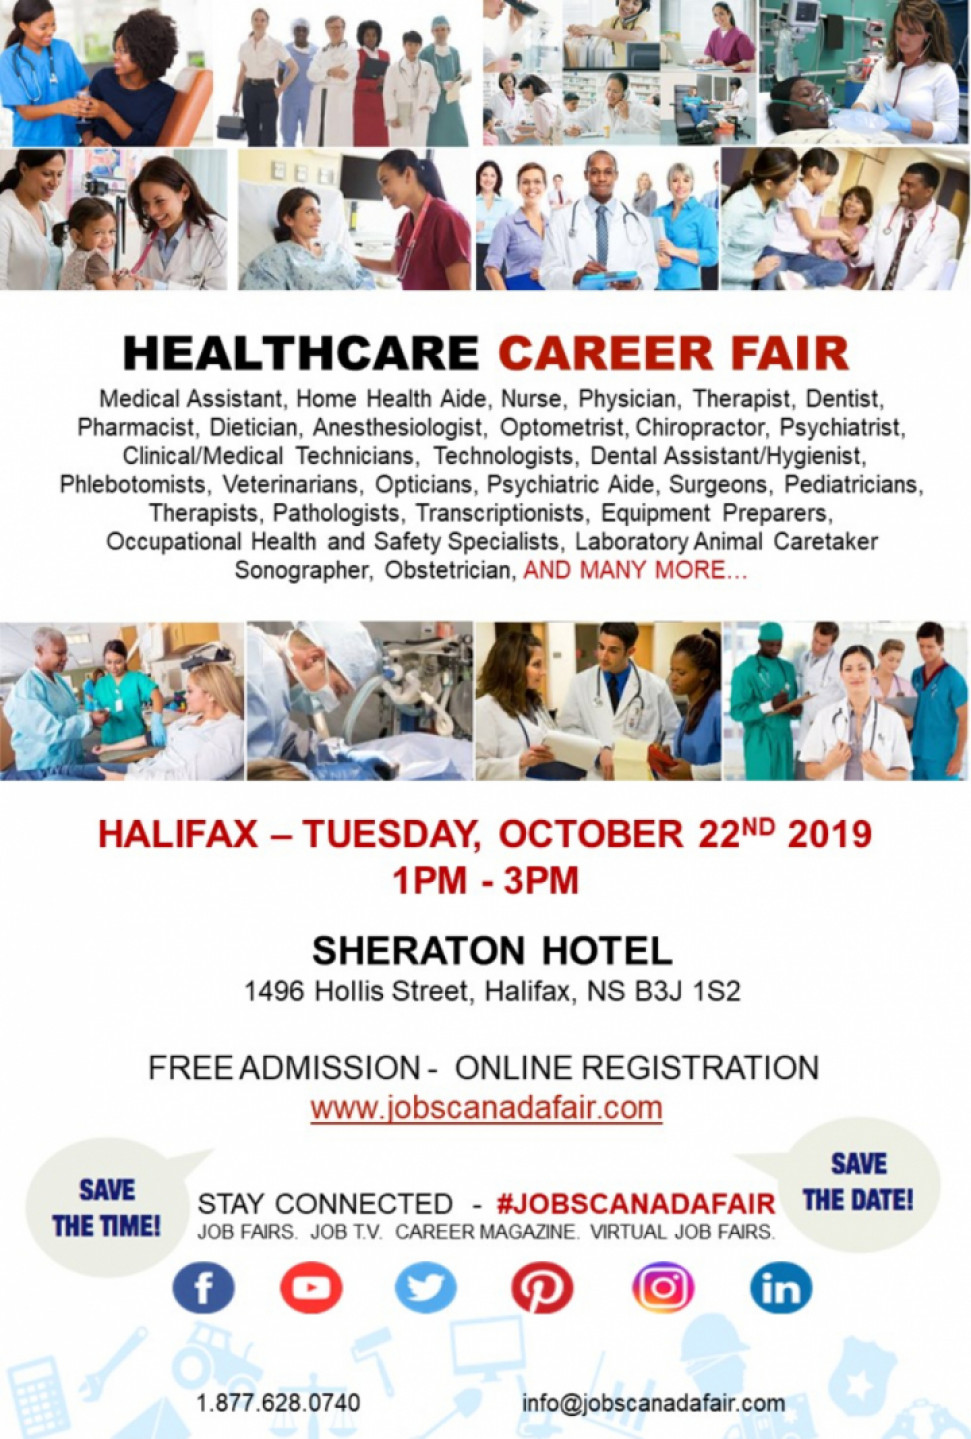 Halifax Healthcare Career Fair - October 22nd, 2019